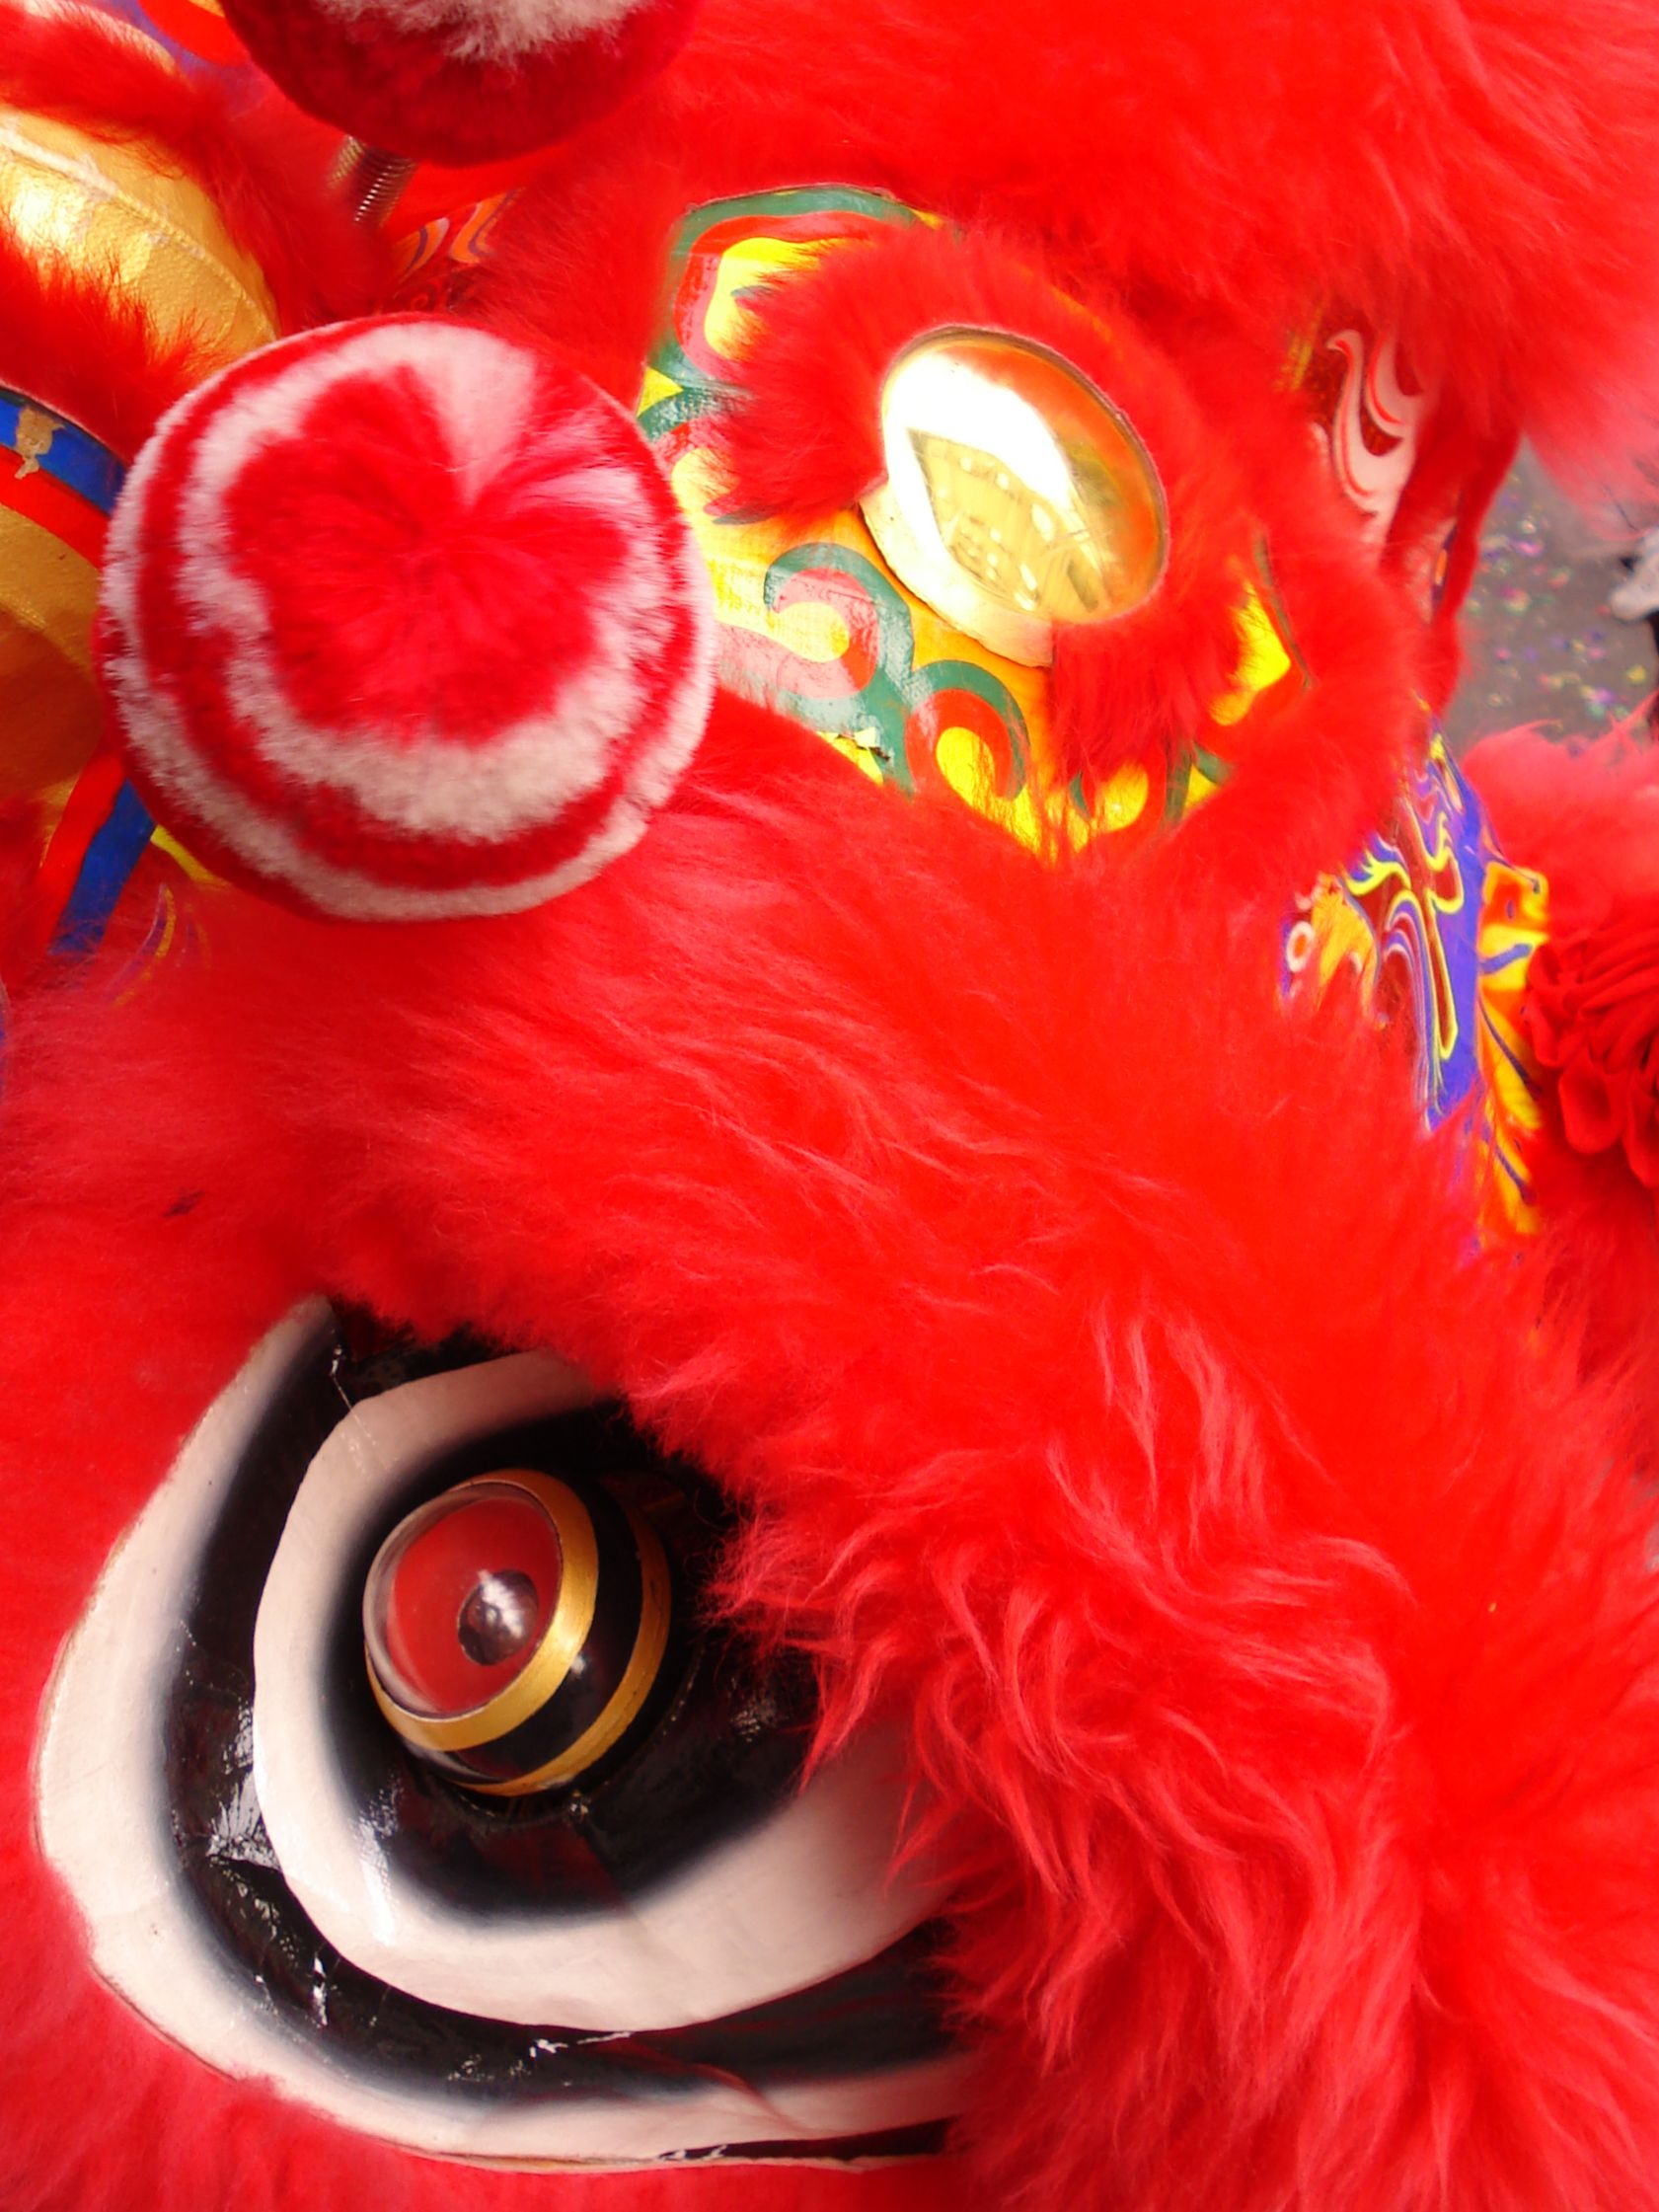 Lunar New Year, Chinatown, NY